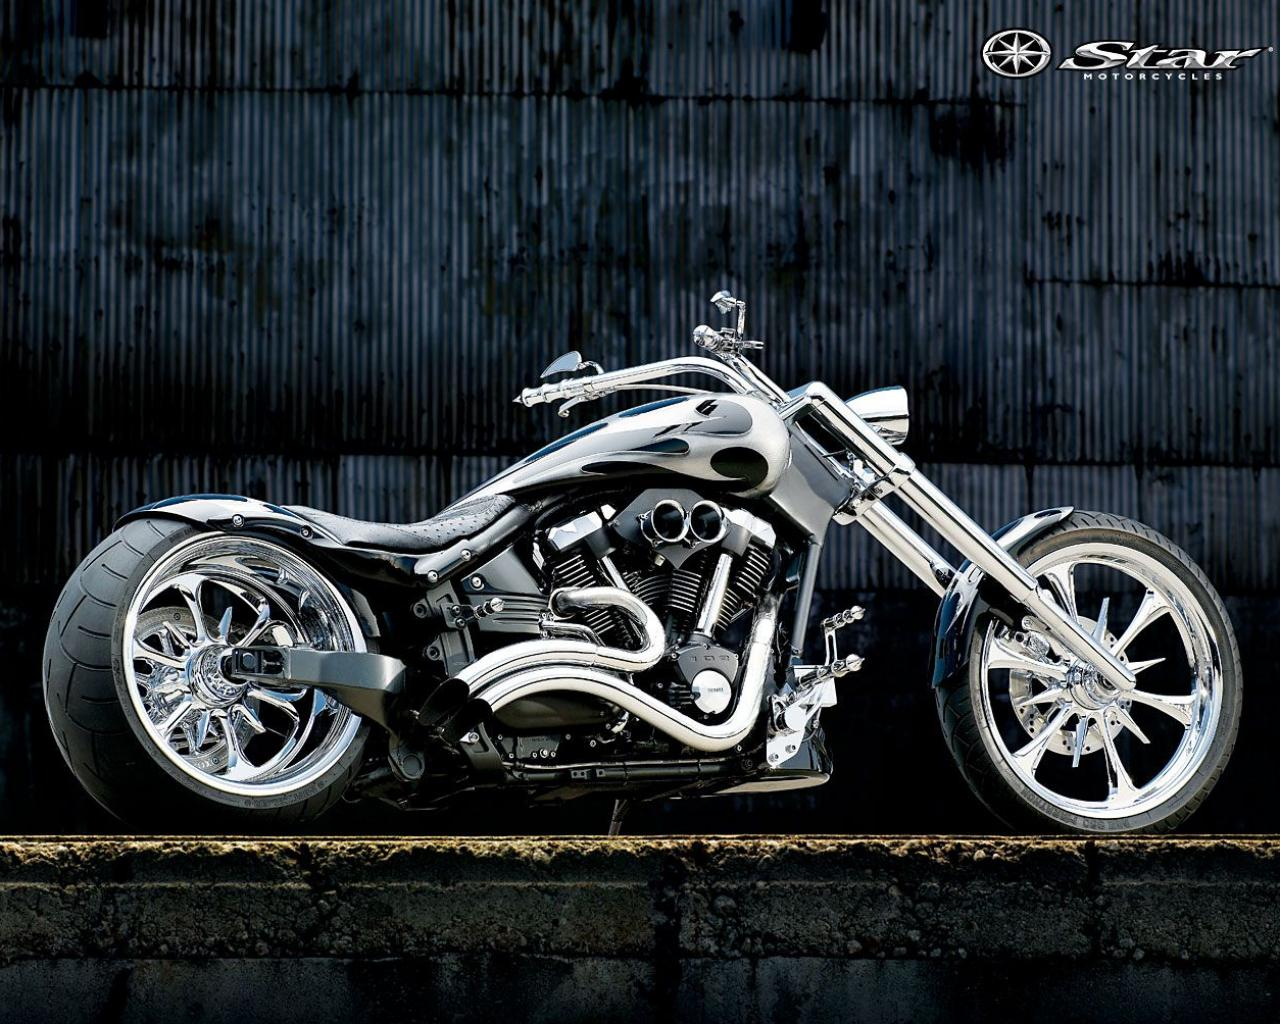 Обои Yamaha Chopper Chrome 1280x1024